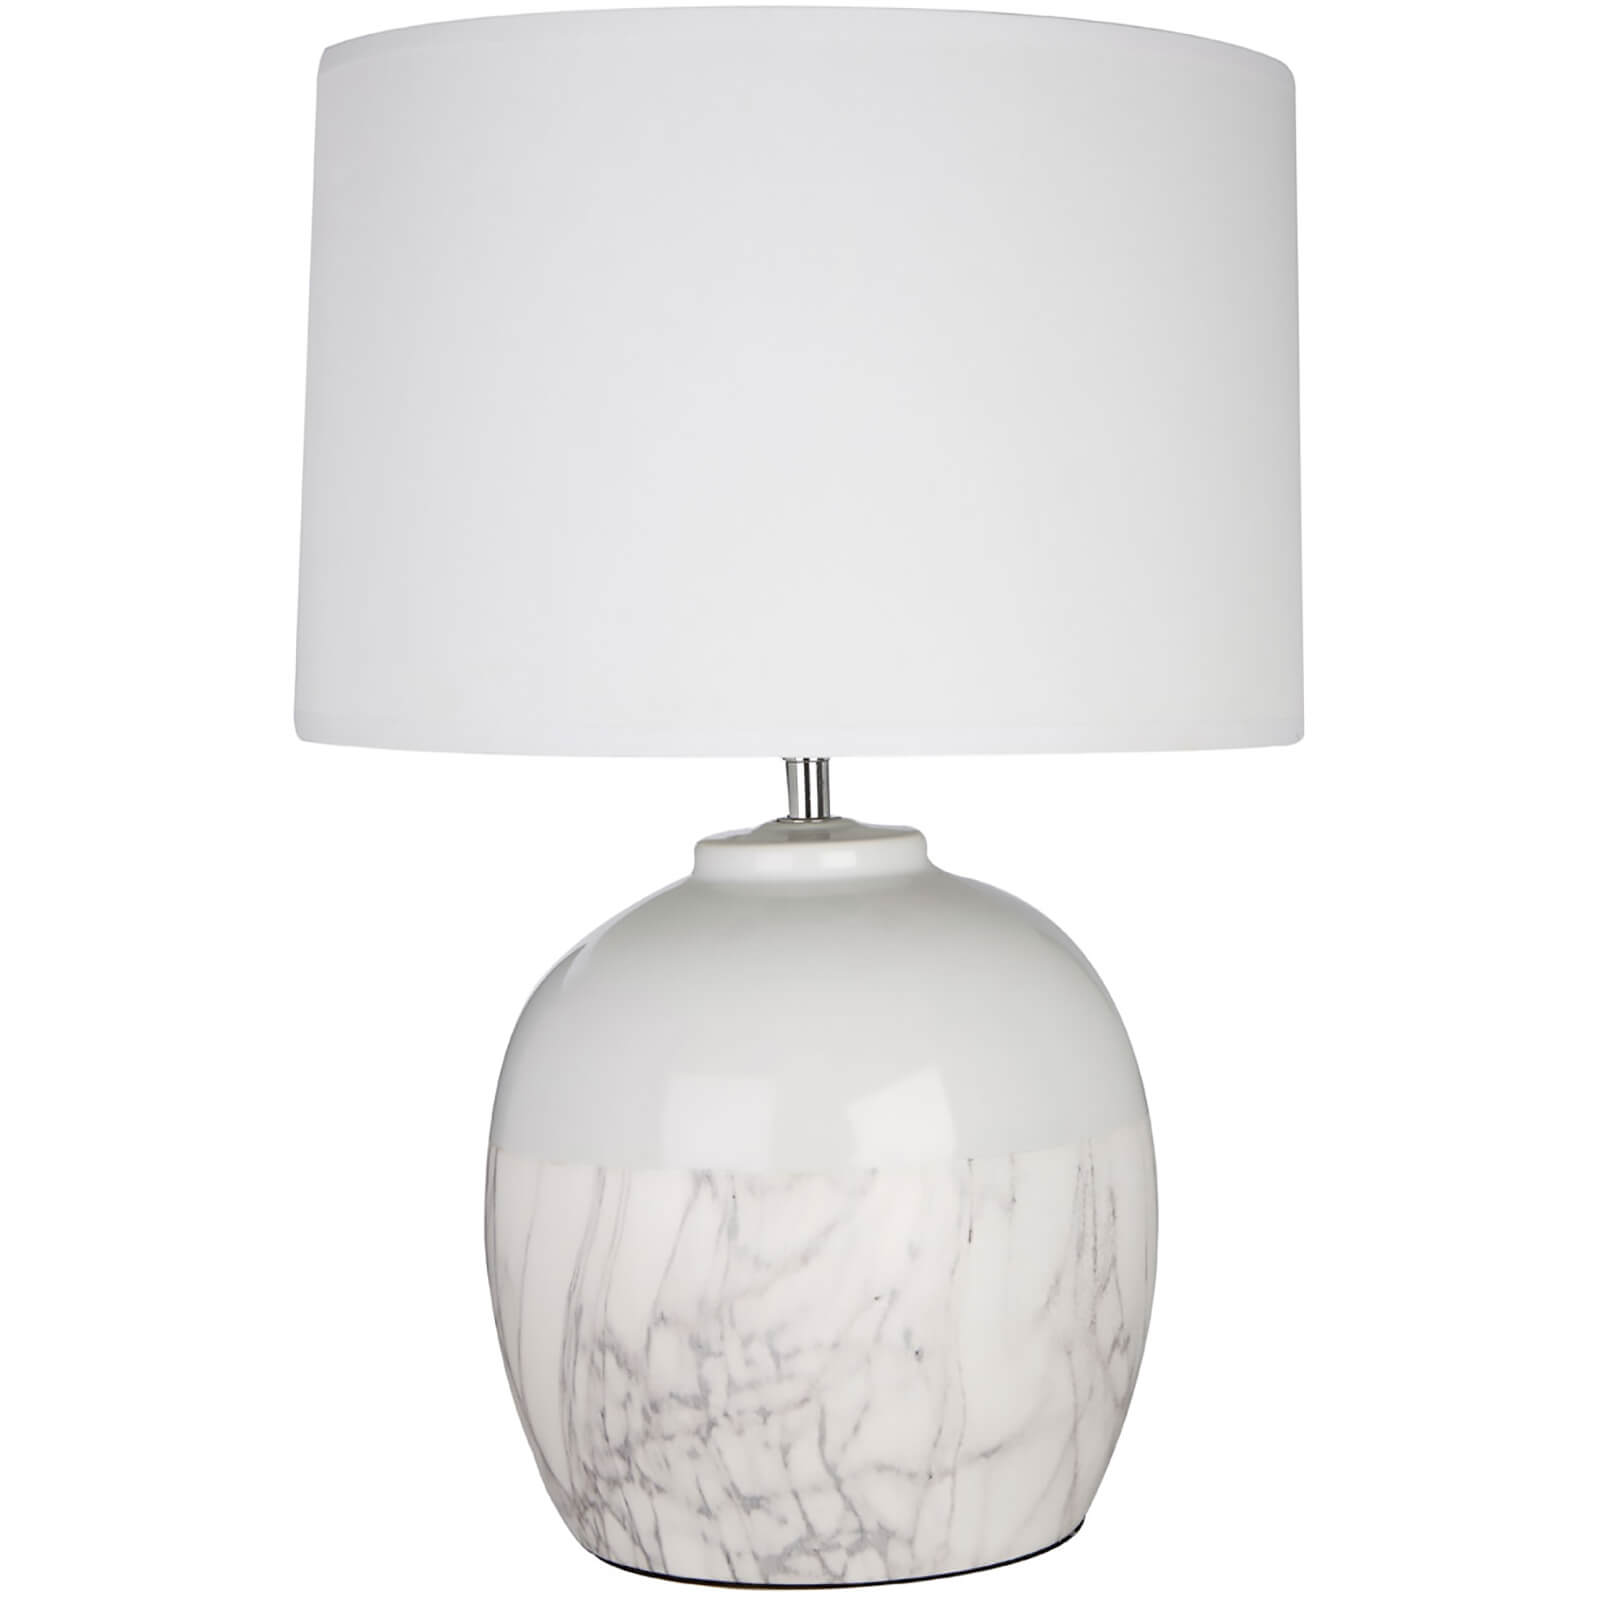 Fifty Five South Whitley Table Lamp - White